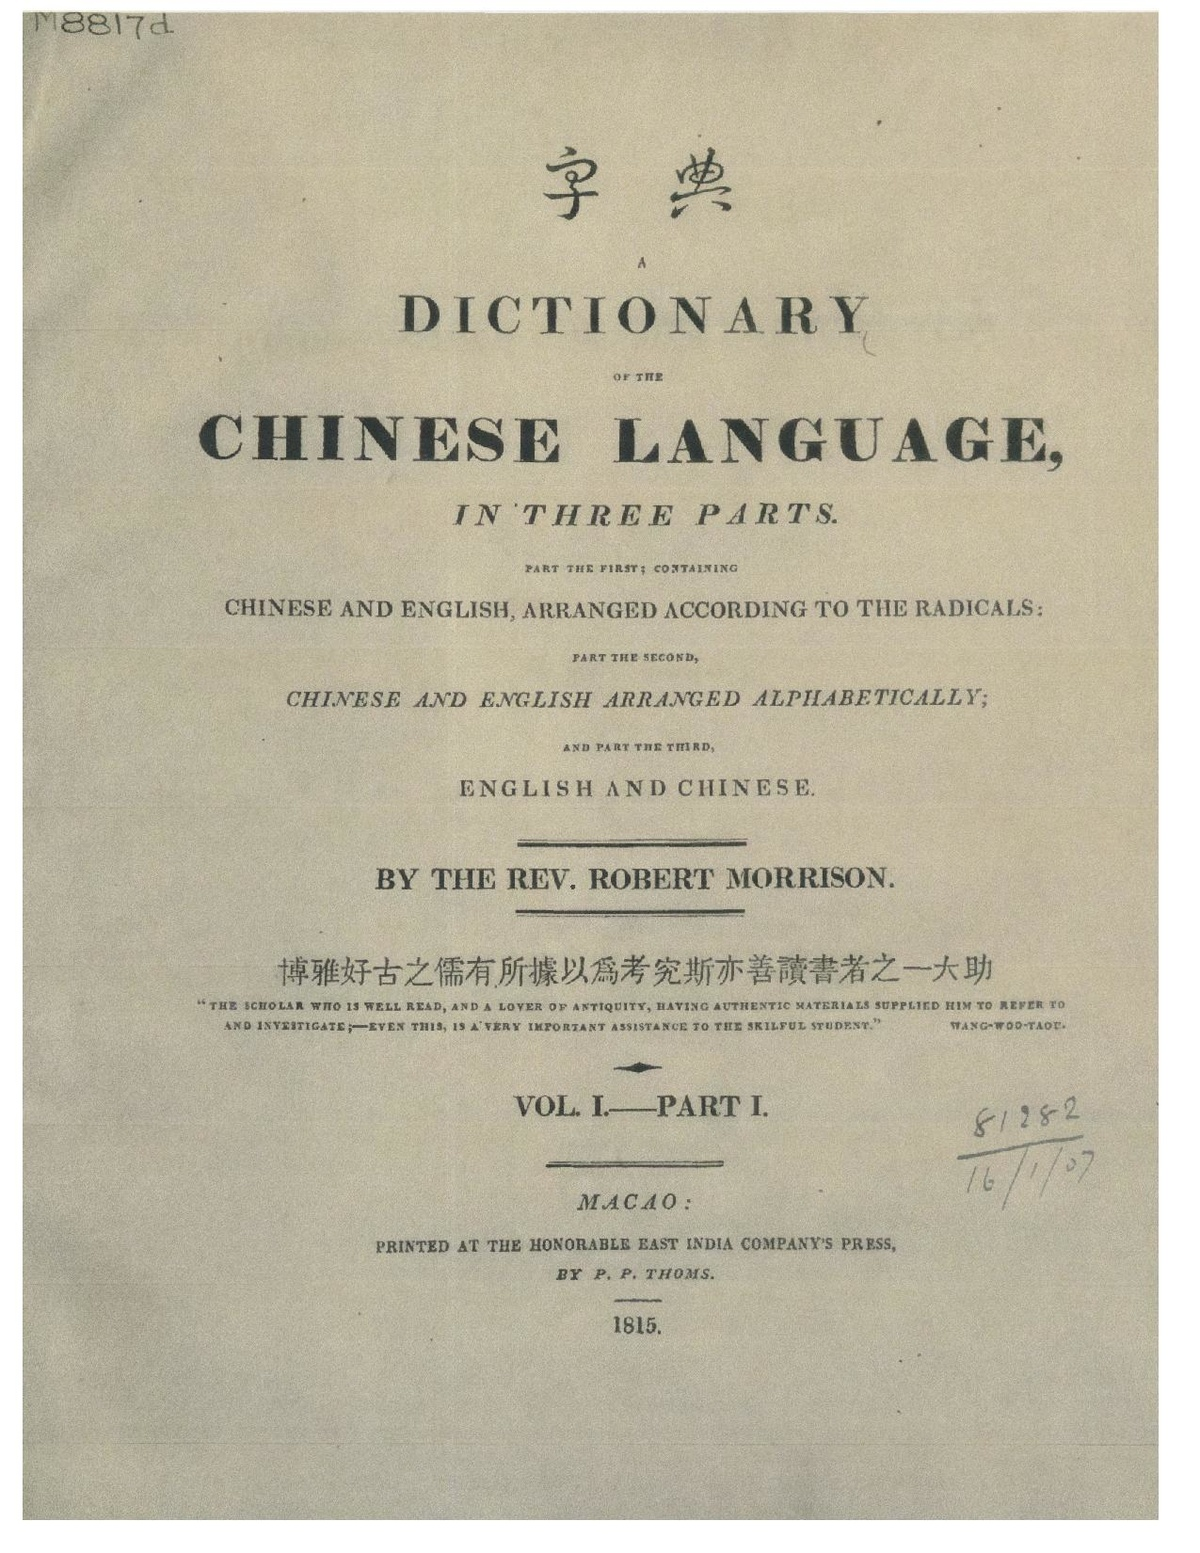 how to write english in chinese language